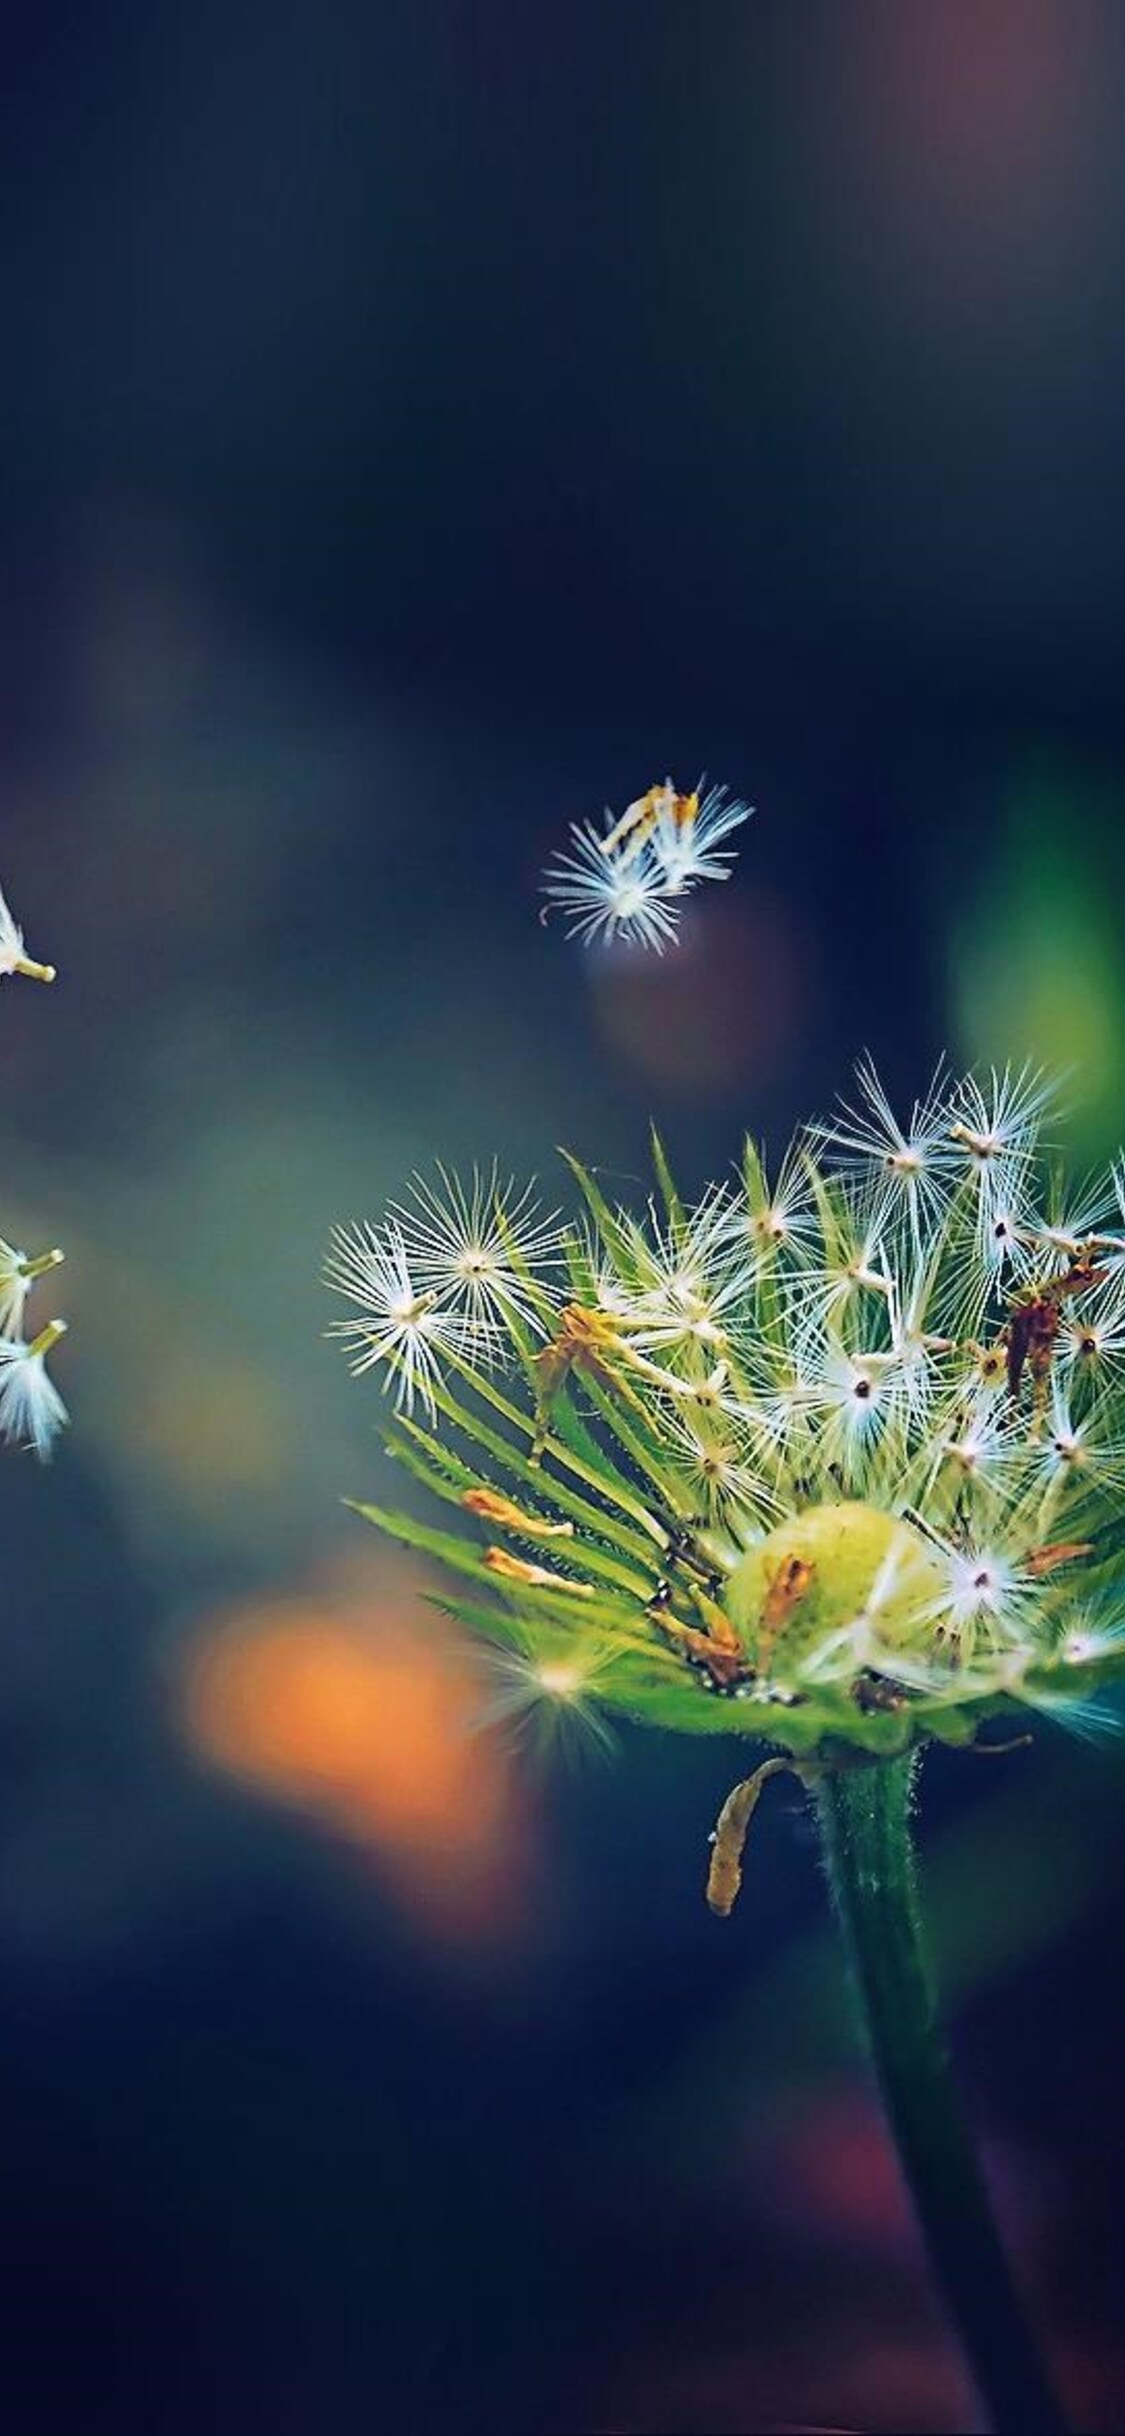 dandelion-flies-flowers.jpg